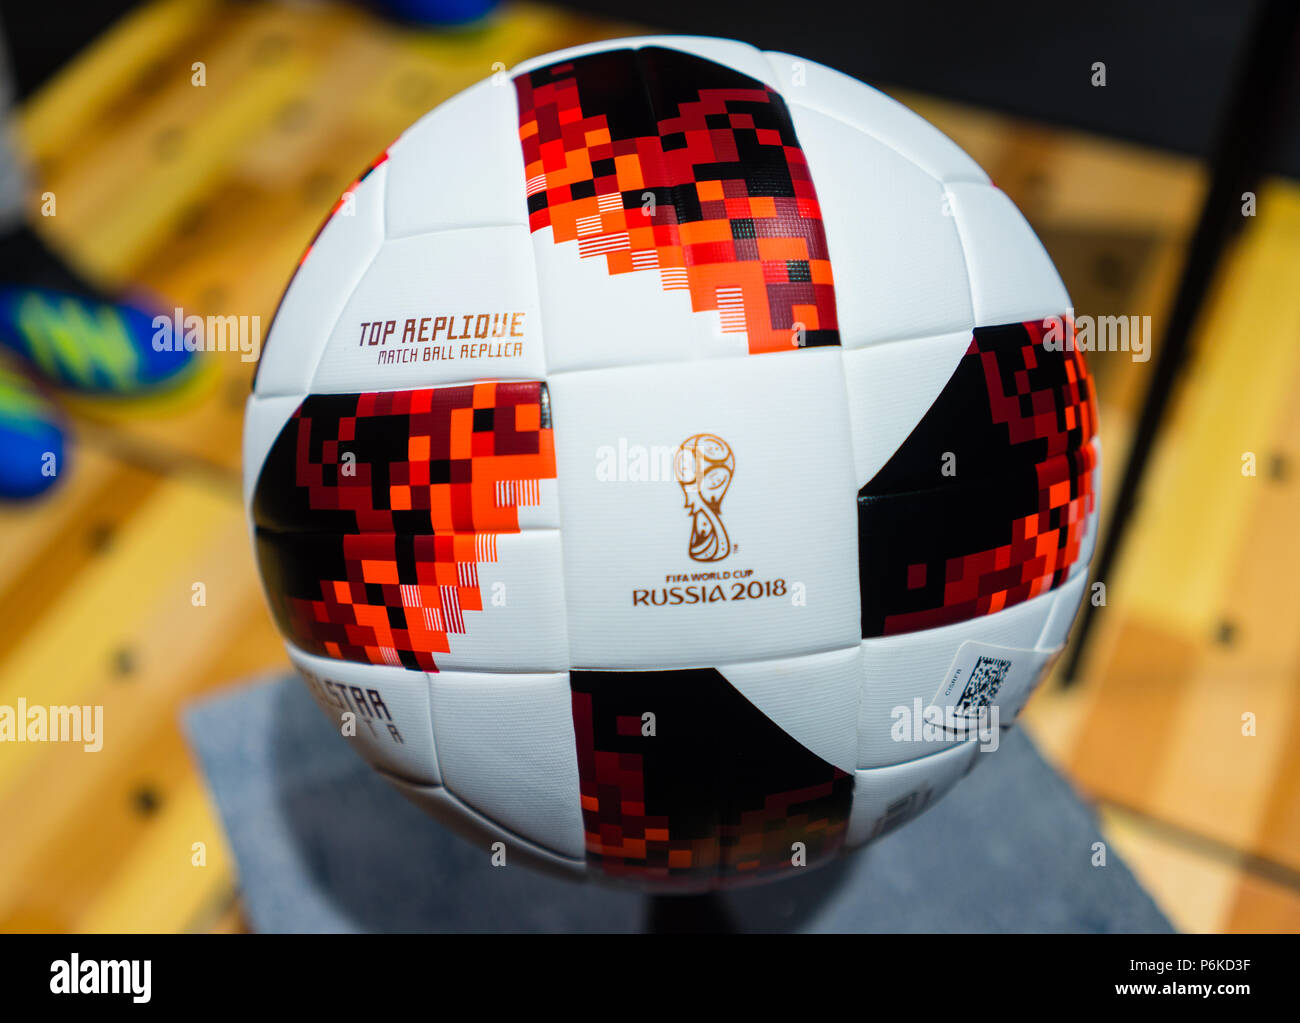 World Cup 2018 Adidas Telstar Football Imágenes De Stock   World Cup ... 460511d82bf03